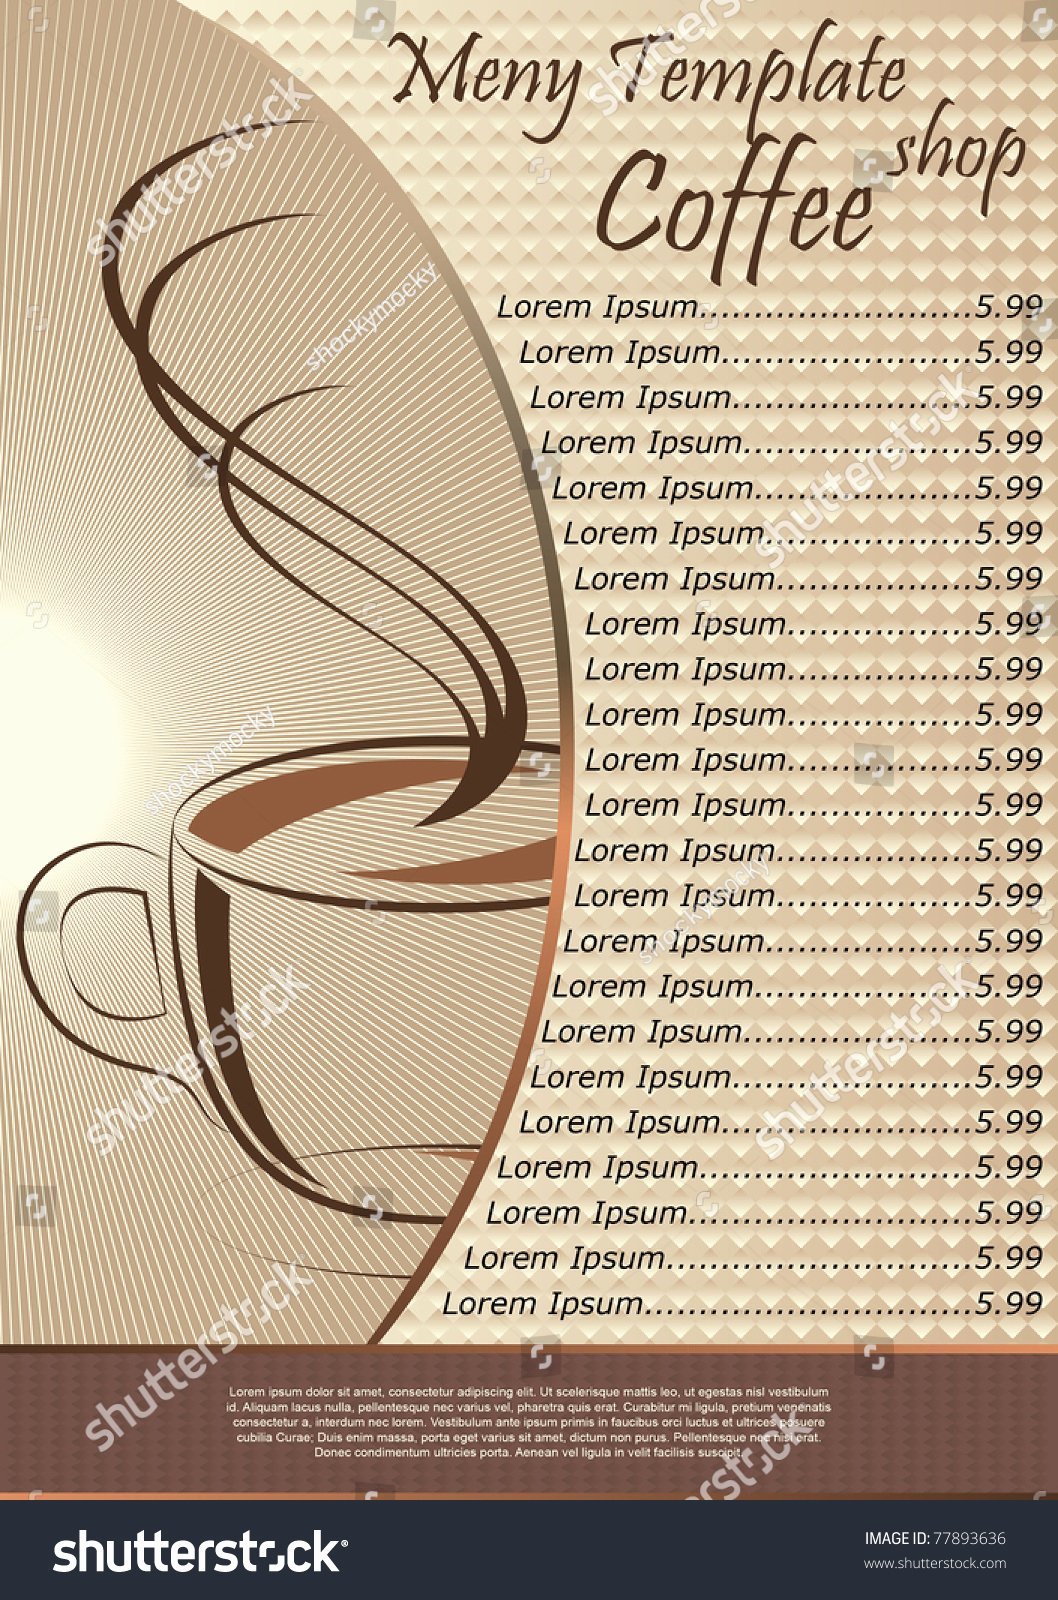 Coffee Shop Menu Template Vector Illustration